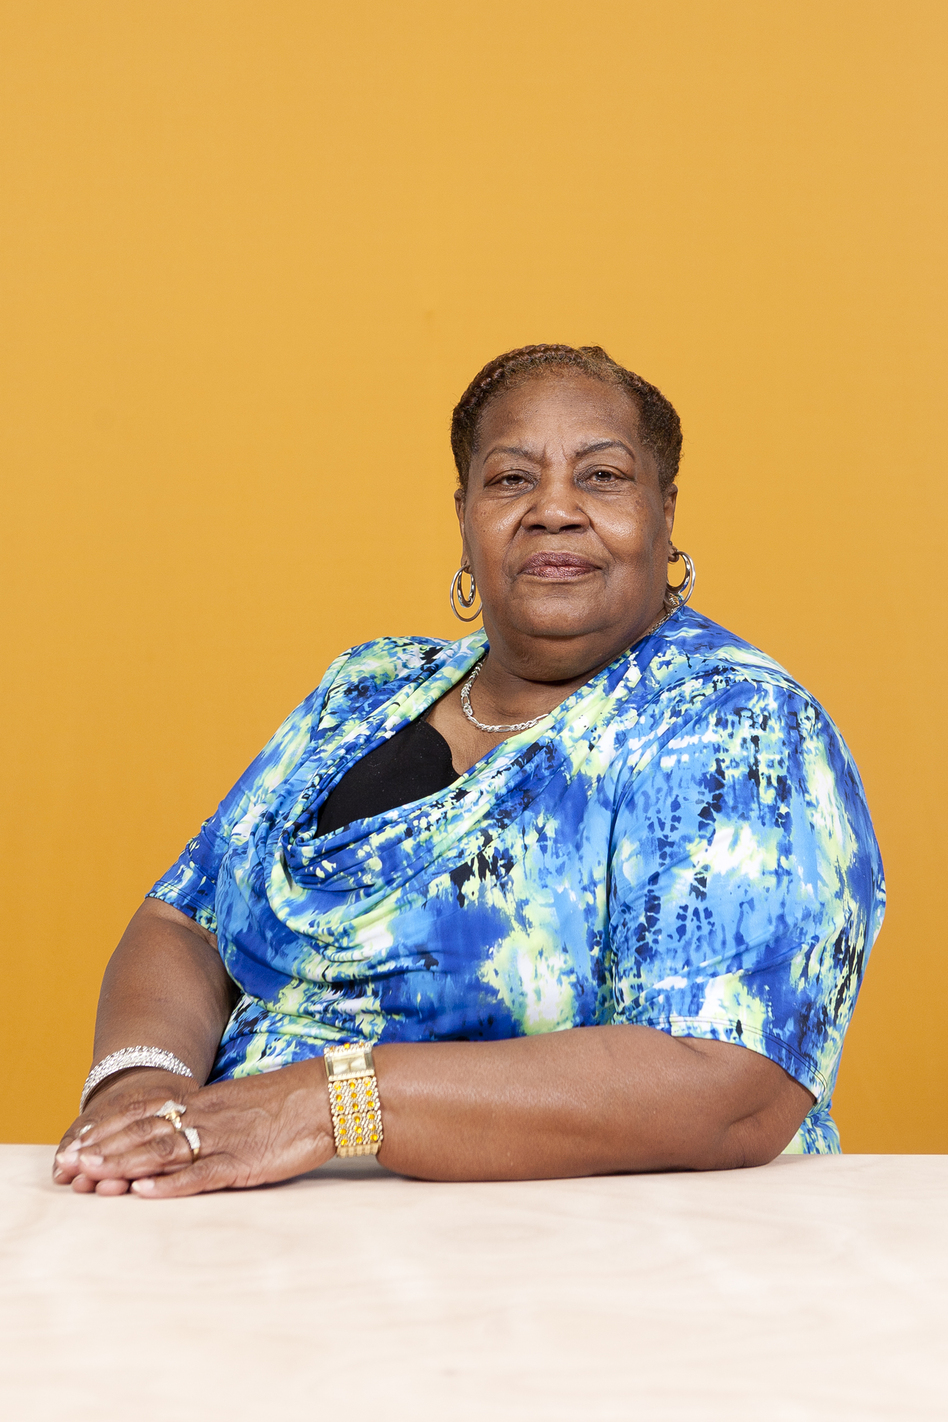 "Jennie Bullock started driving a bus when there were few women on the job. She says, ""Some people didn't want to ride with the women. When you pull in, they would say, 'Go ahead, I'll wait for the next bus.' ... But I think word got around that Ms. Bullock was a strong woman and she didn't play."" (Michael Lease)"